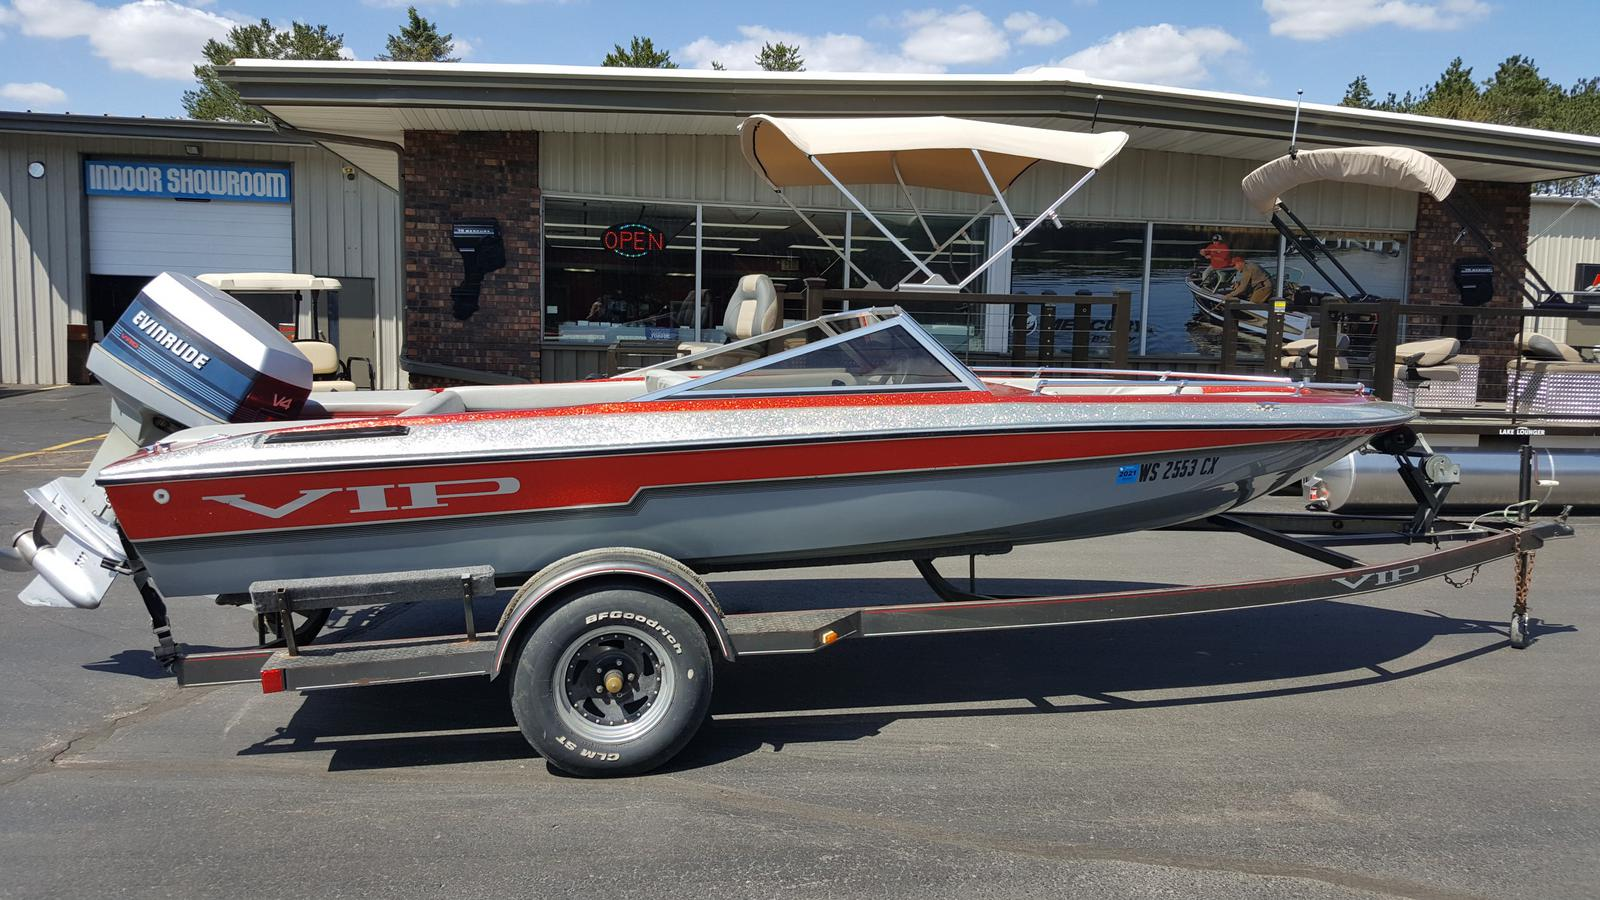 Inventory from VIP and Weeres Badger Marine Nekoosa, WI (715) 886-3308